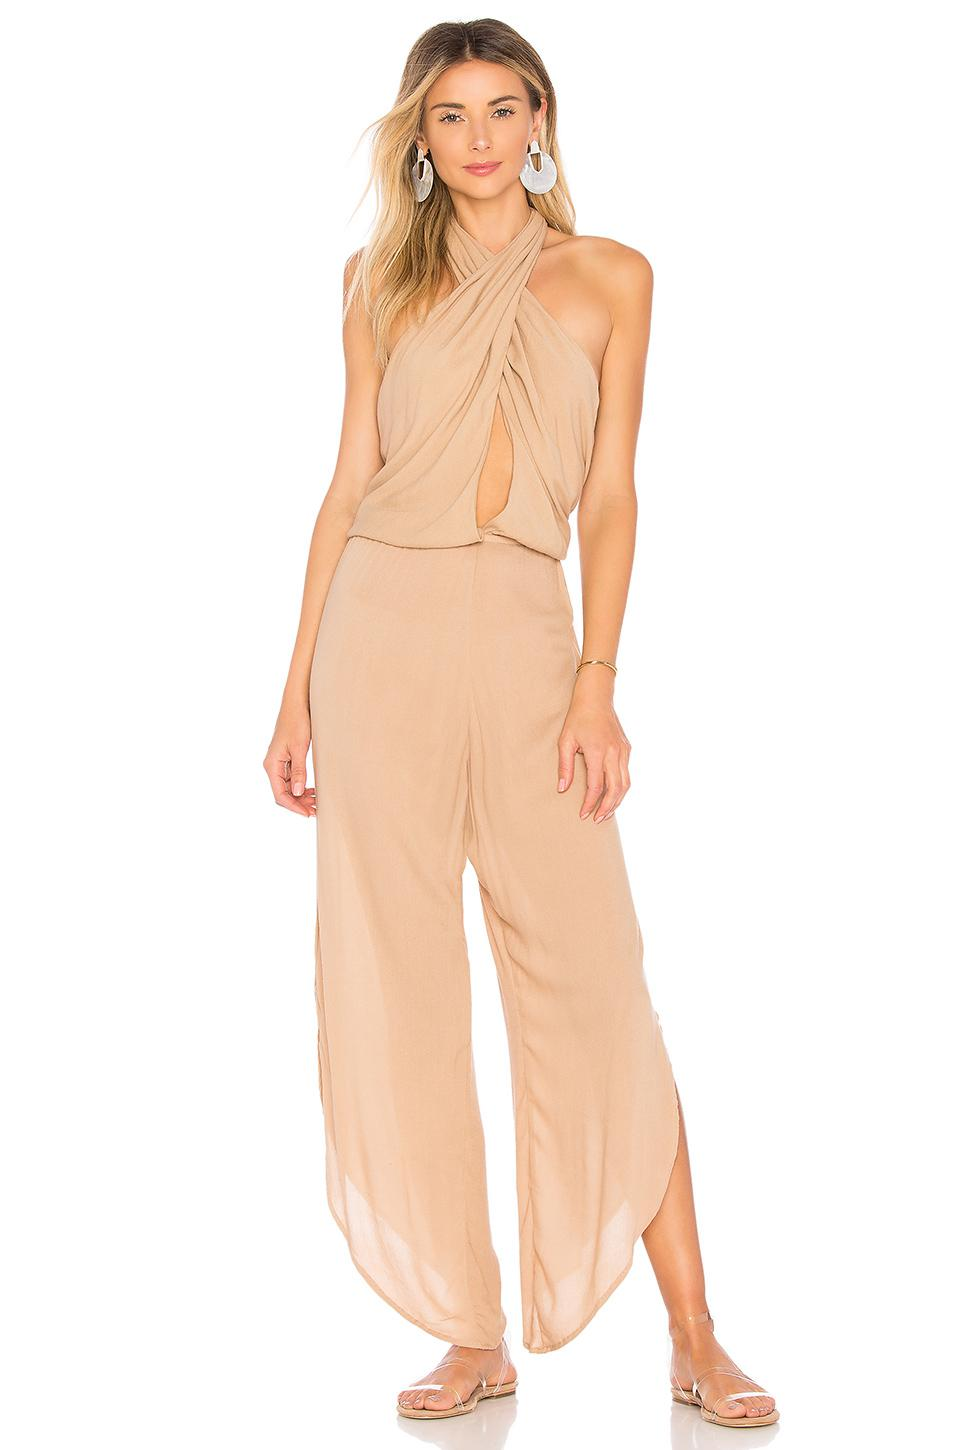 1032c47f0316 Indah Pearl Jumpsuit in Natural - Lyst